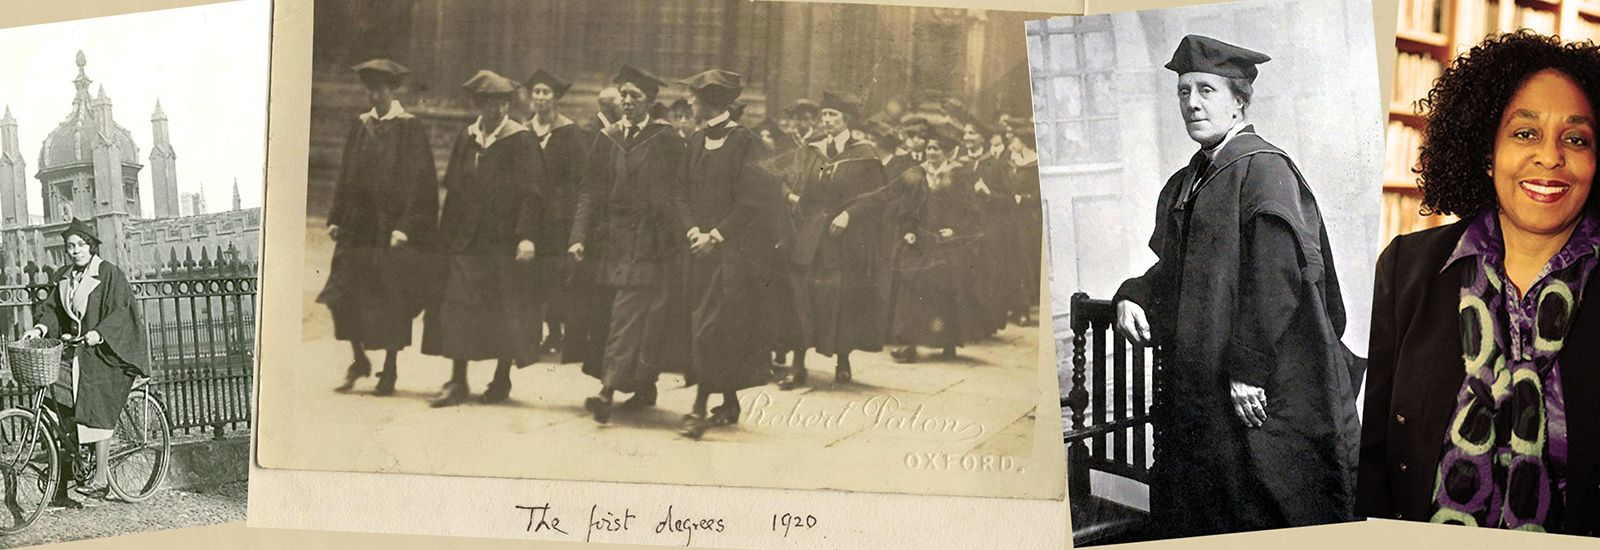 Images of women at Oxford from the past 100 years